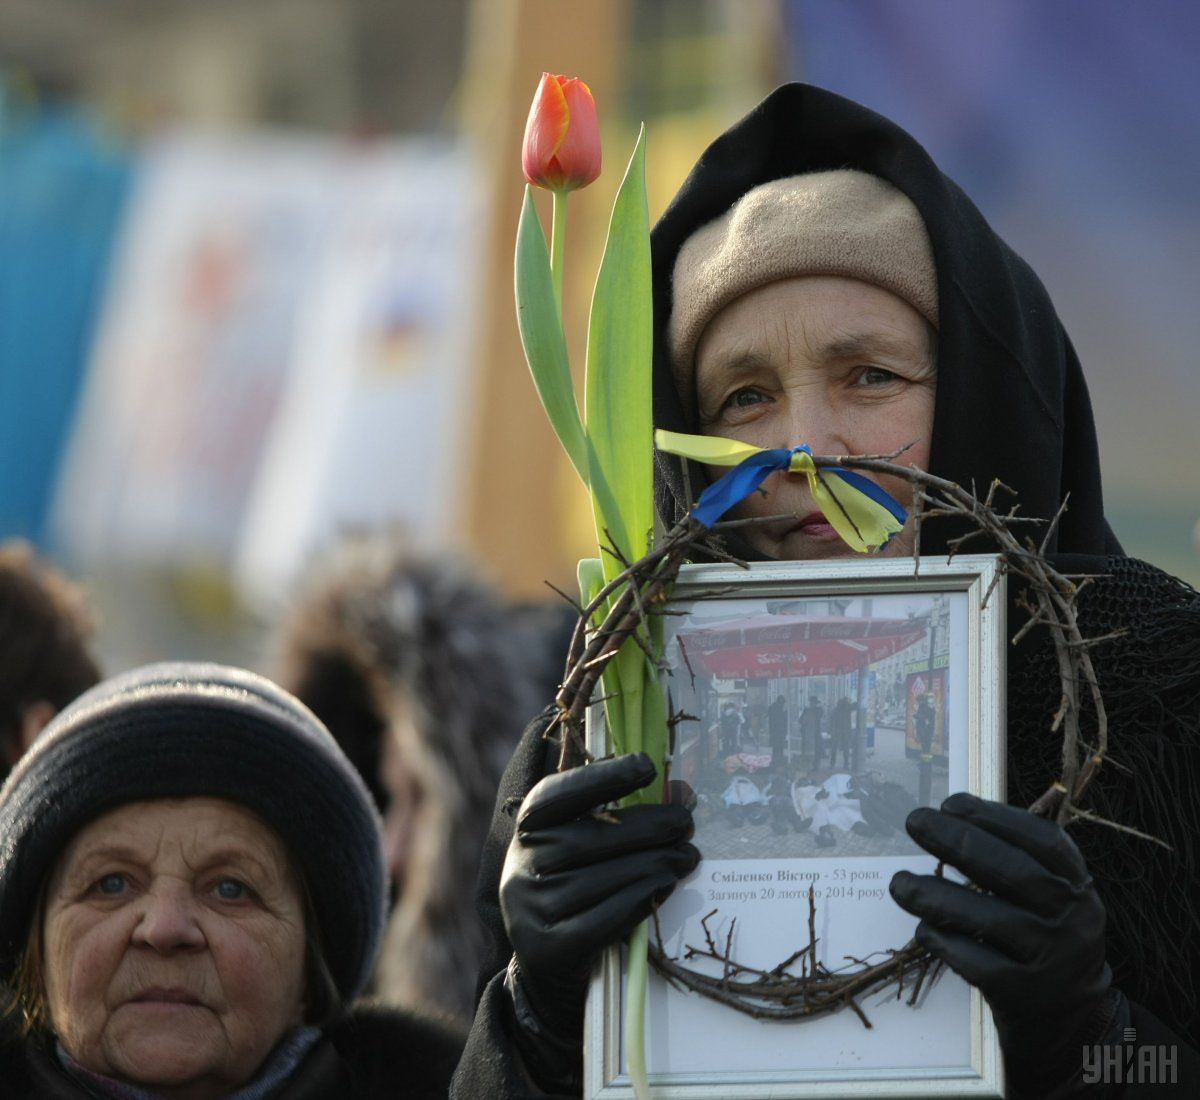 A woman holding a portrait of the killed Maidan protester and a crown of thorns, Kyiv, Wednesday, February 26, 2014 / Photo from UNIAN